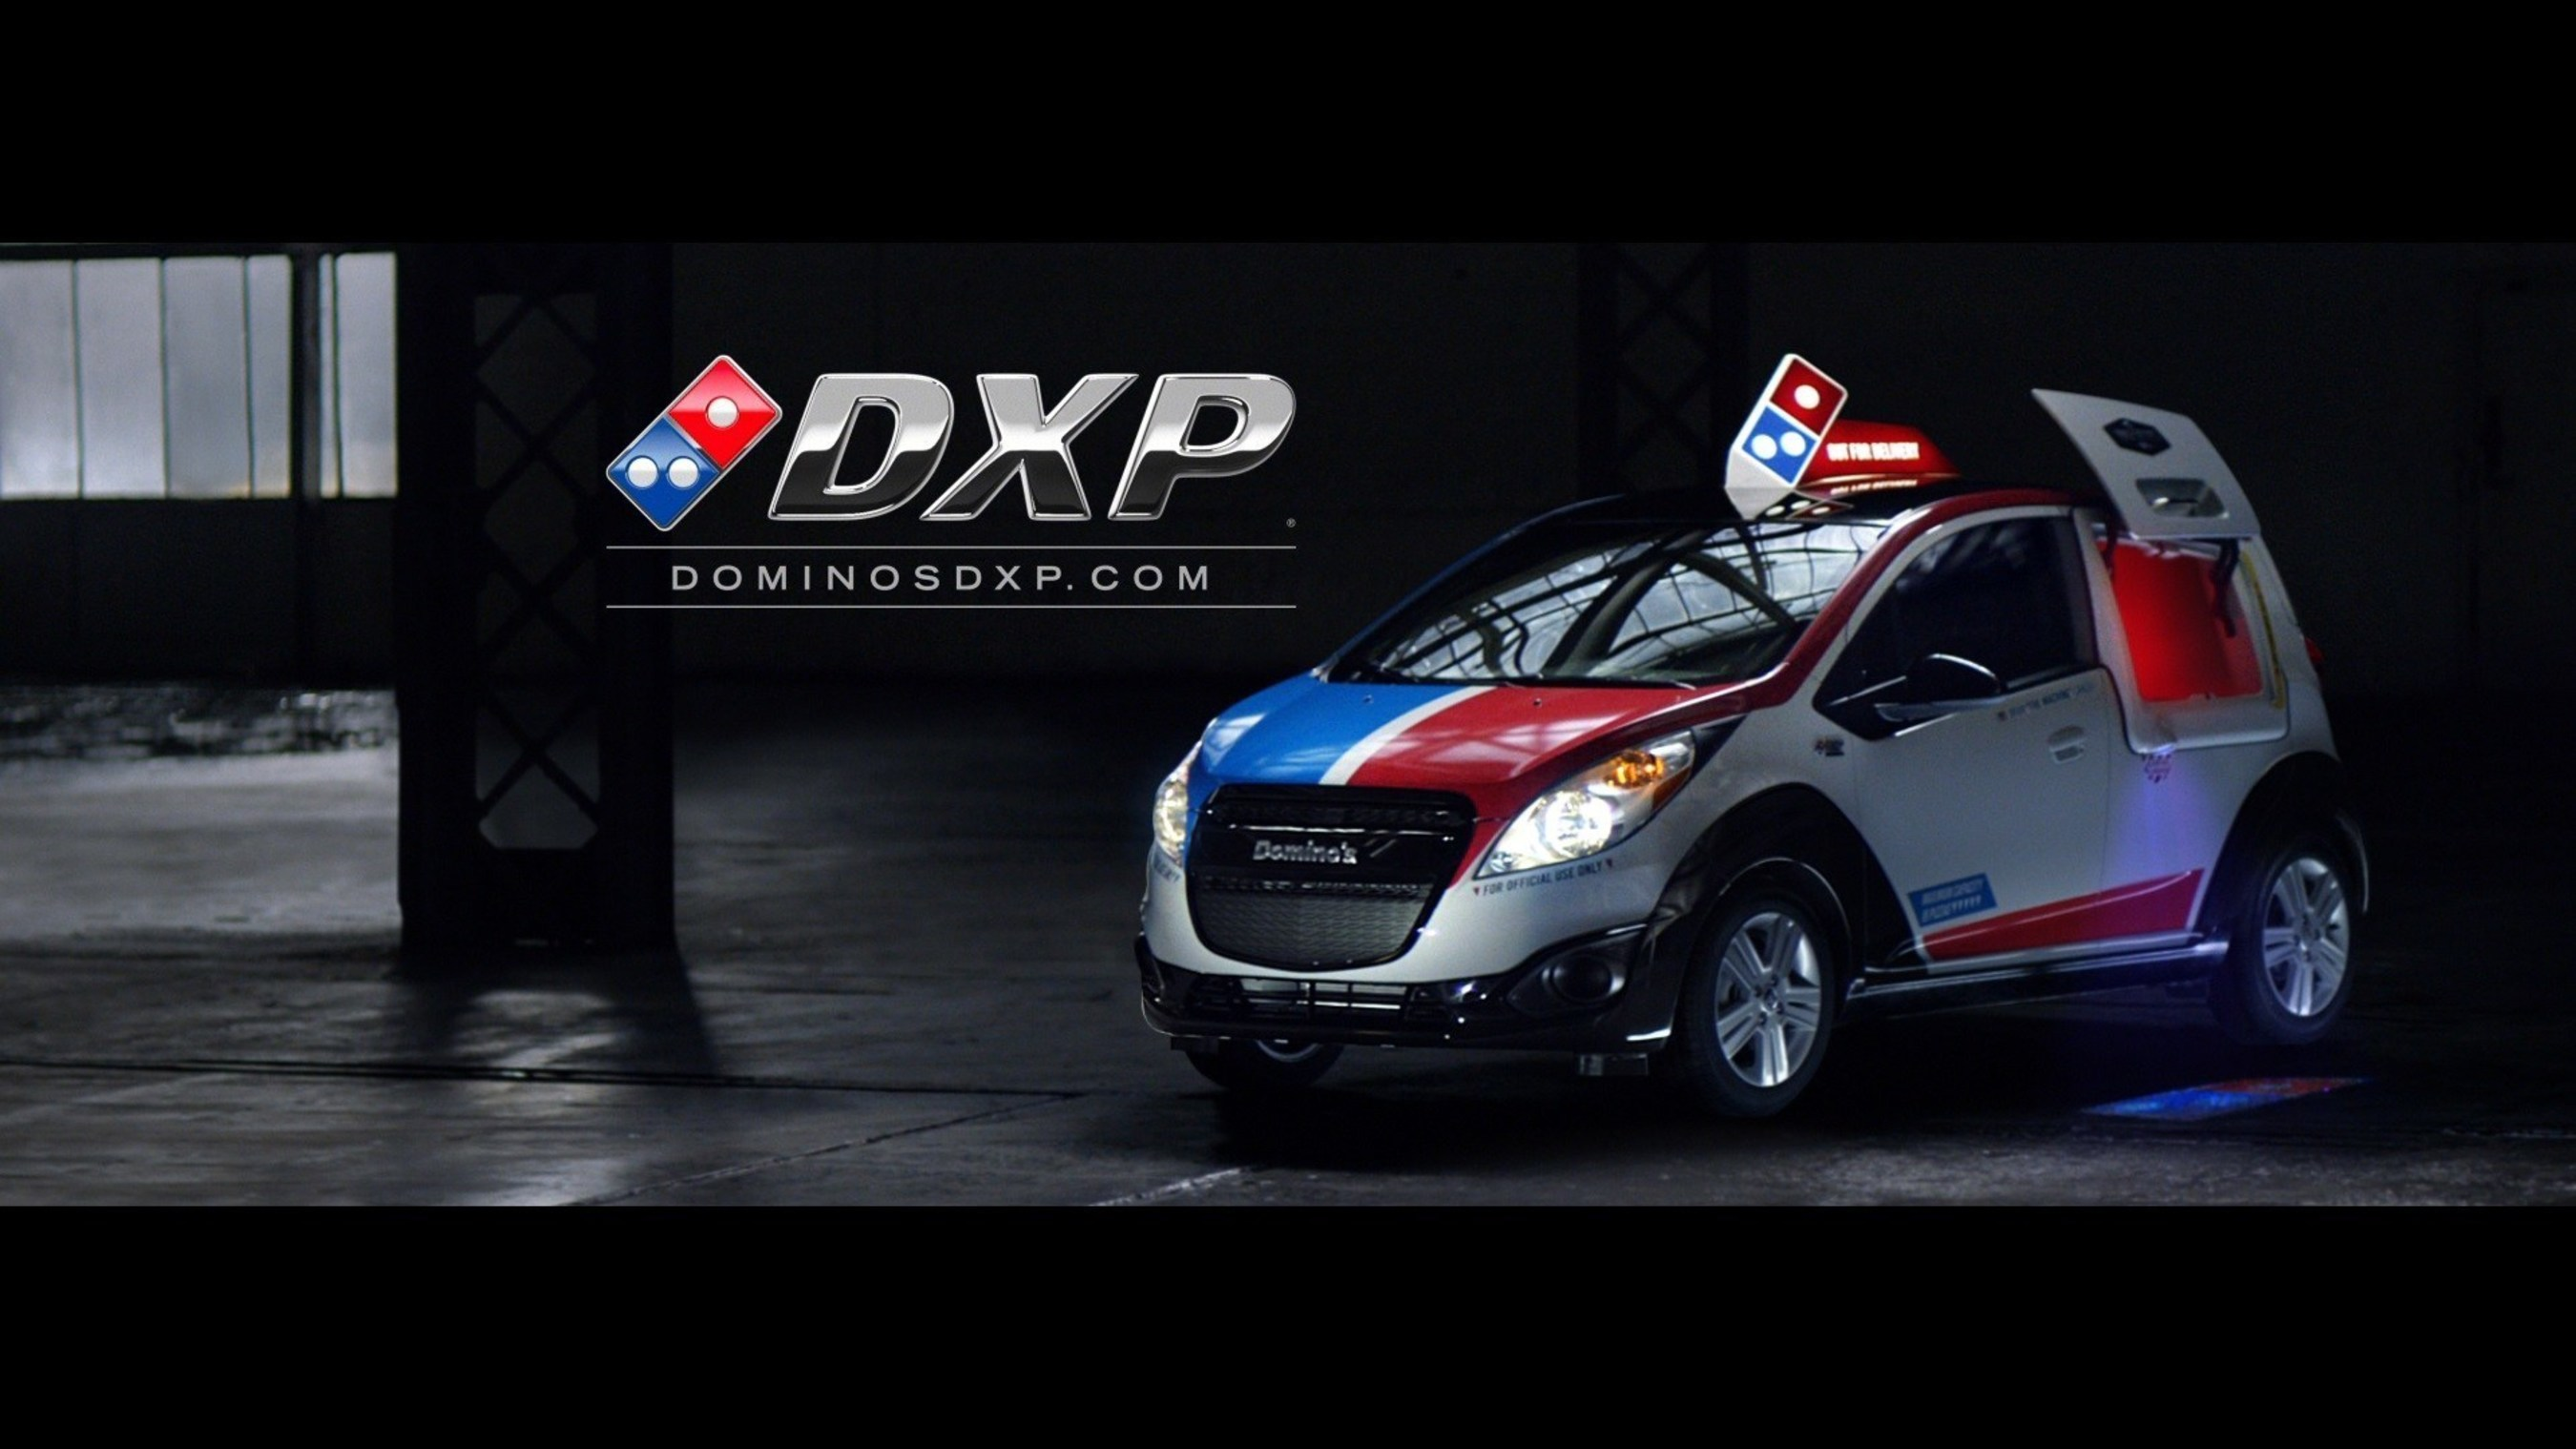 Domino's is giving customers the chance to vote for their local store to win a DXP delivery vehicle.